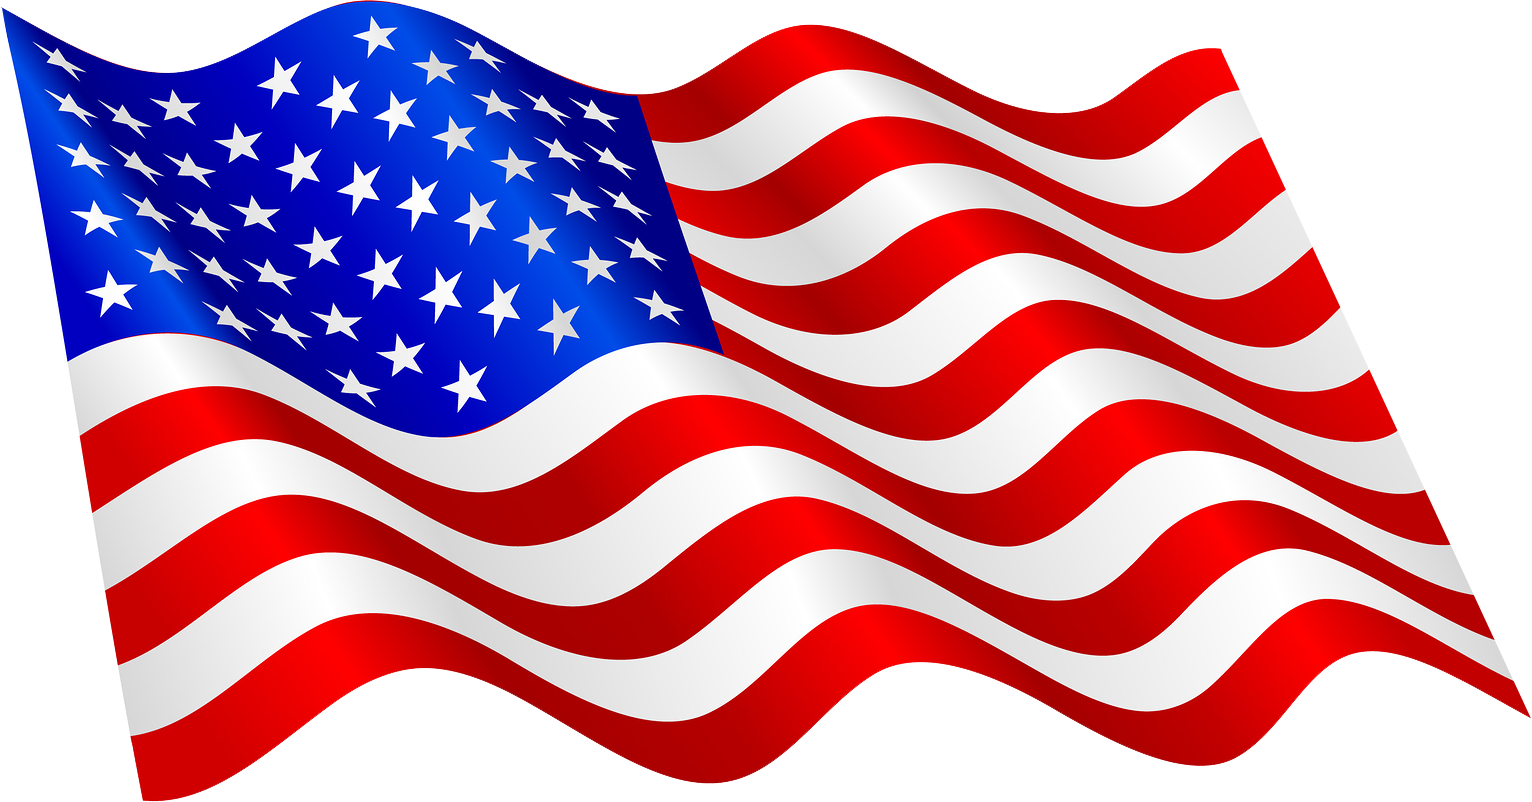 american flag png image purepng free transparent cc0 png image rh purepng com free american flag clip art images us flag free clipart